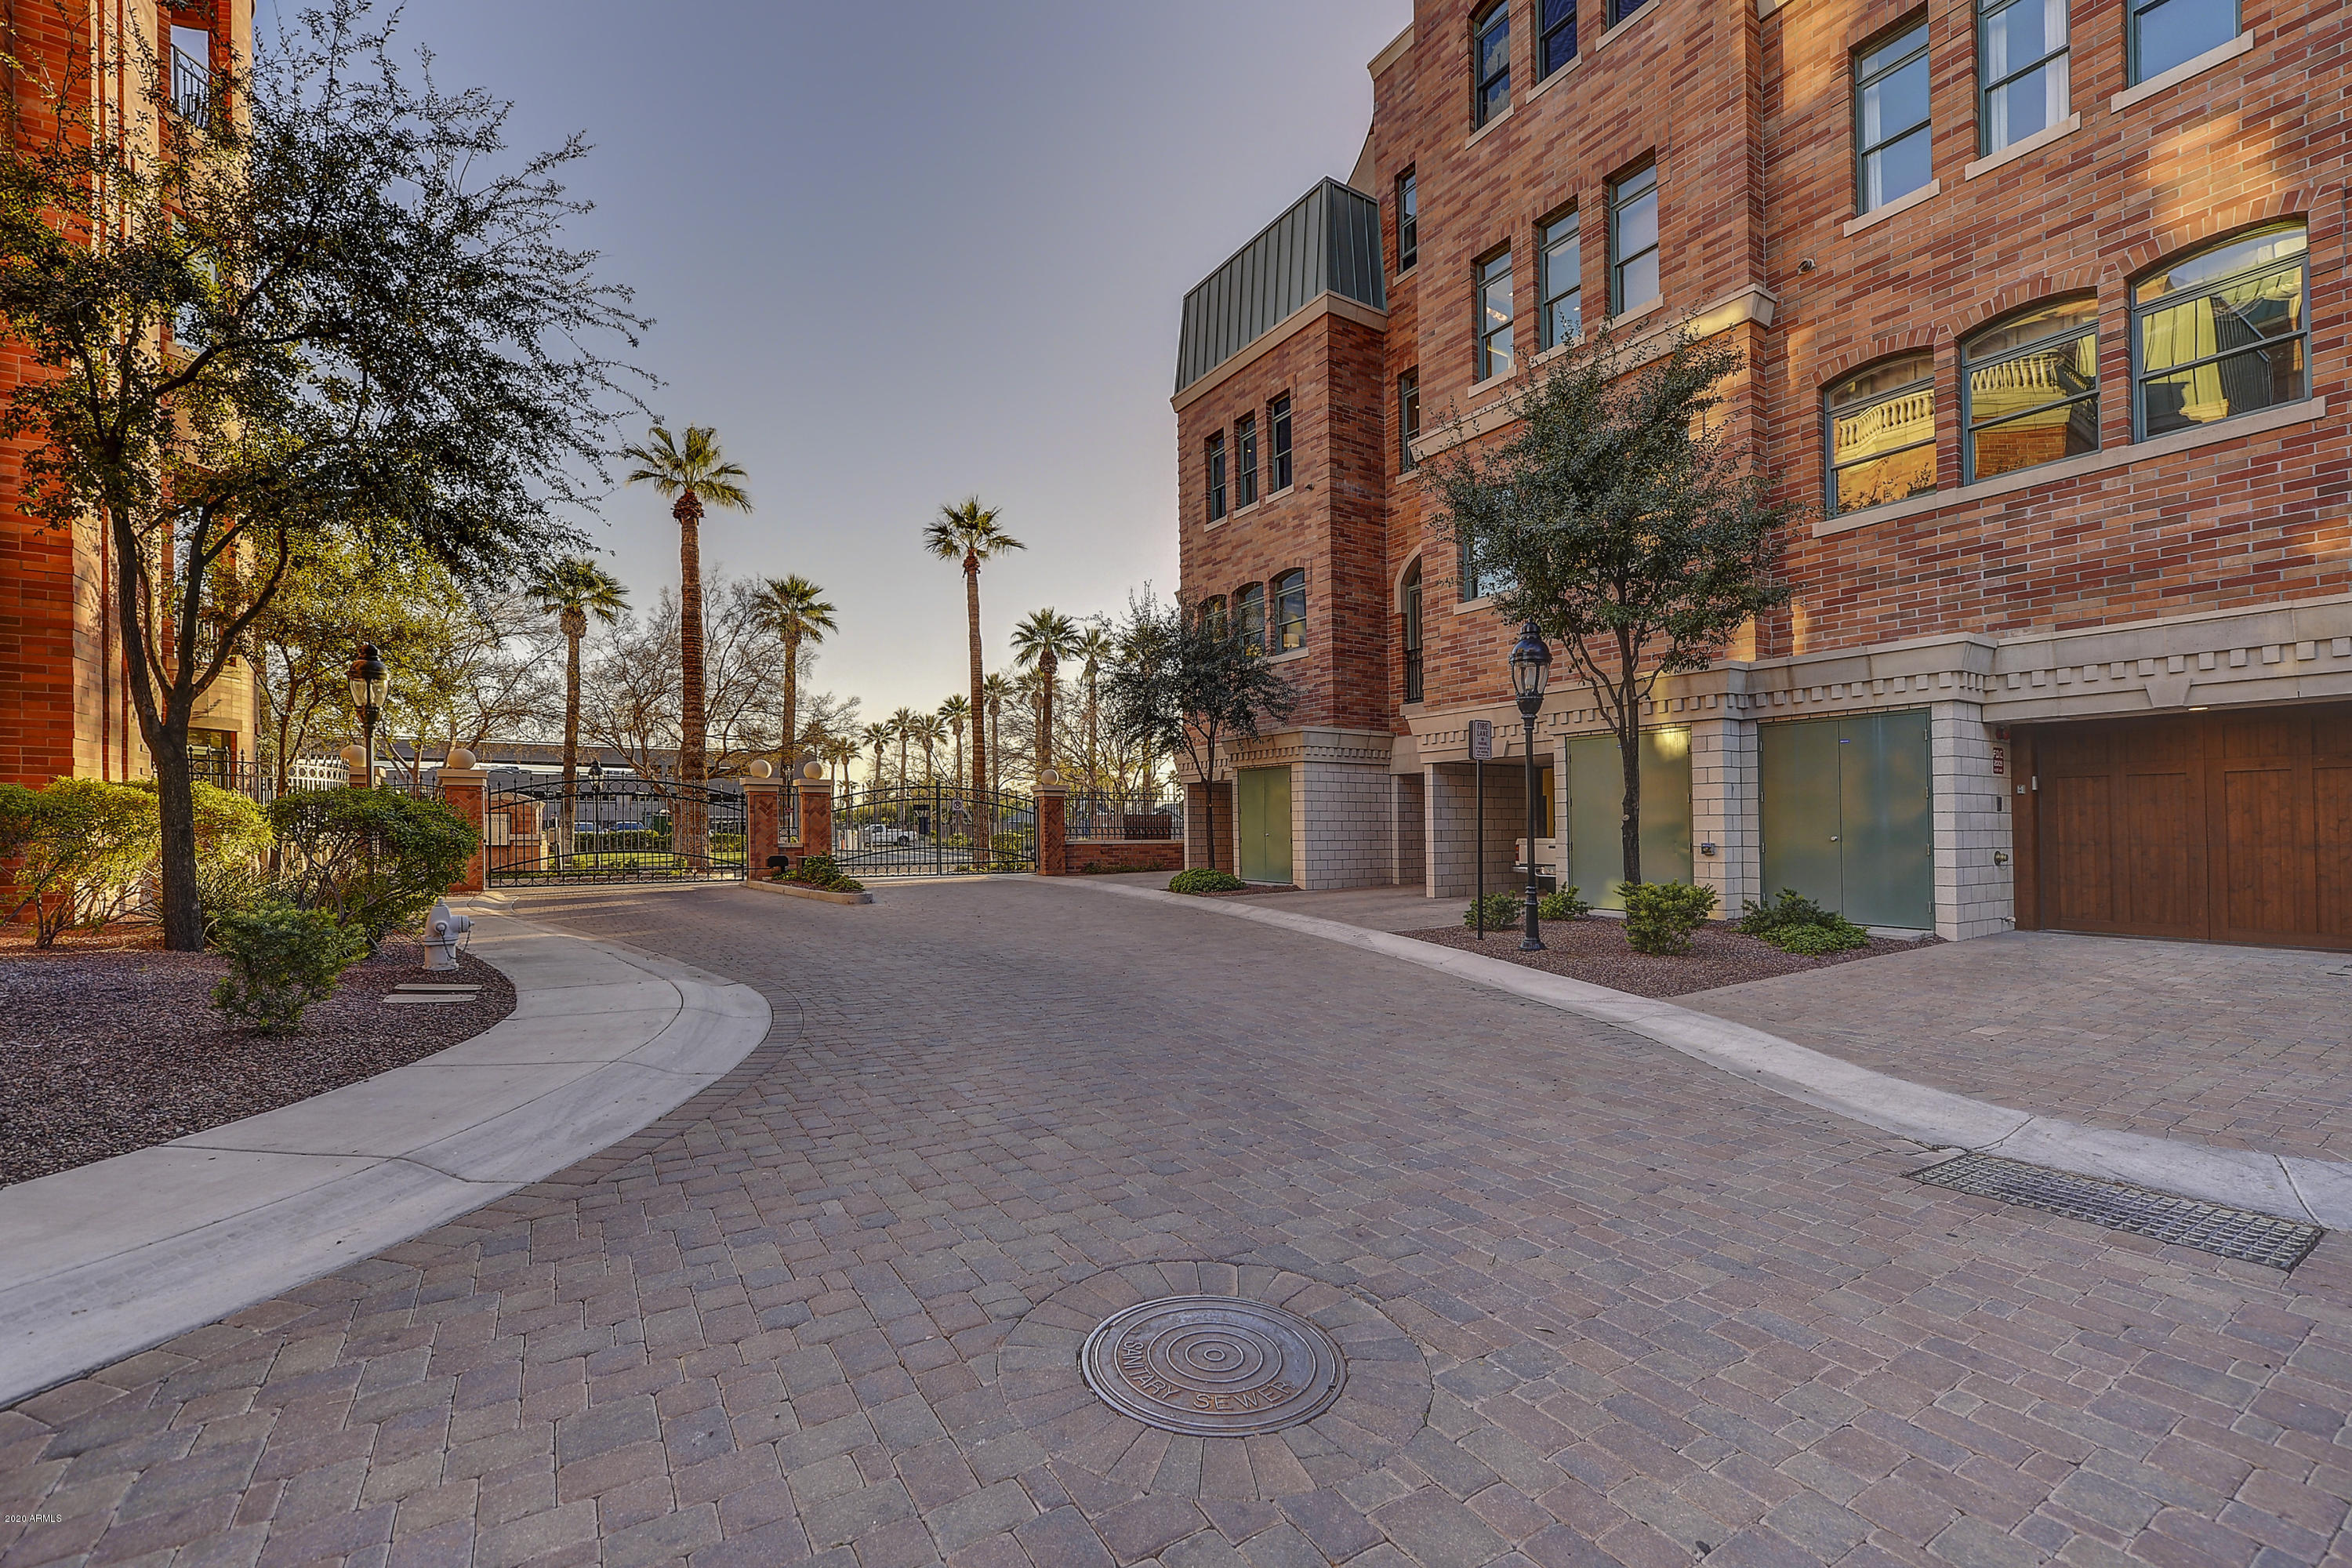 Chateau On Central Luxury Condo S For Sale Rent In Phoenix 2017